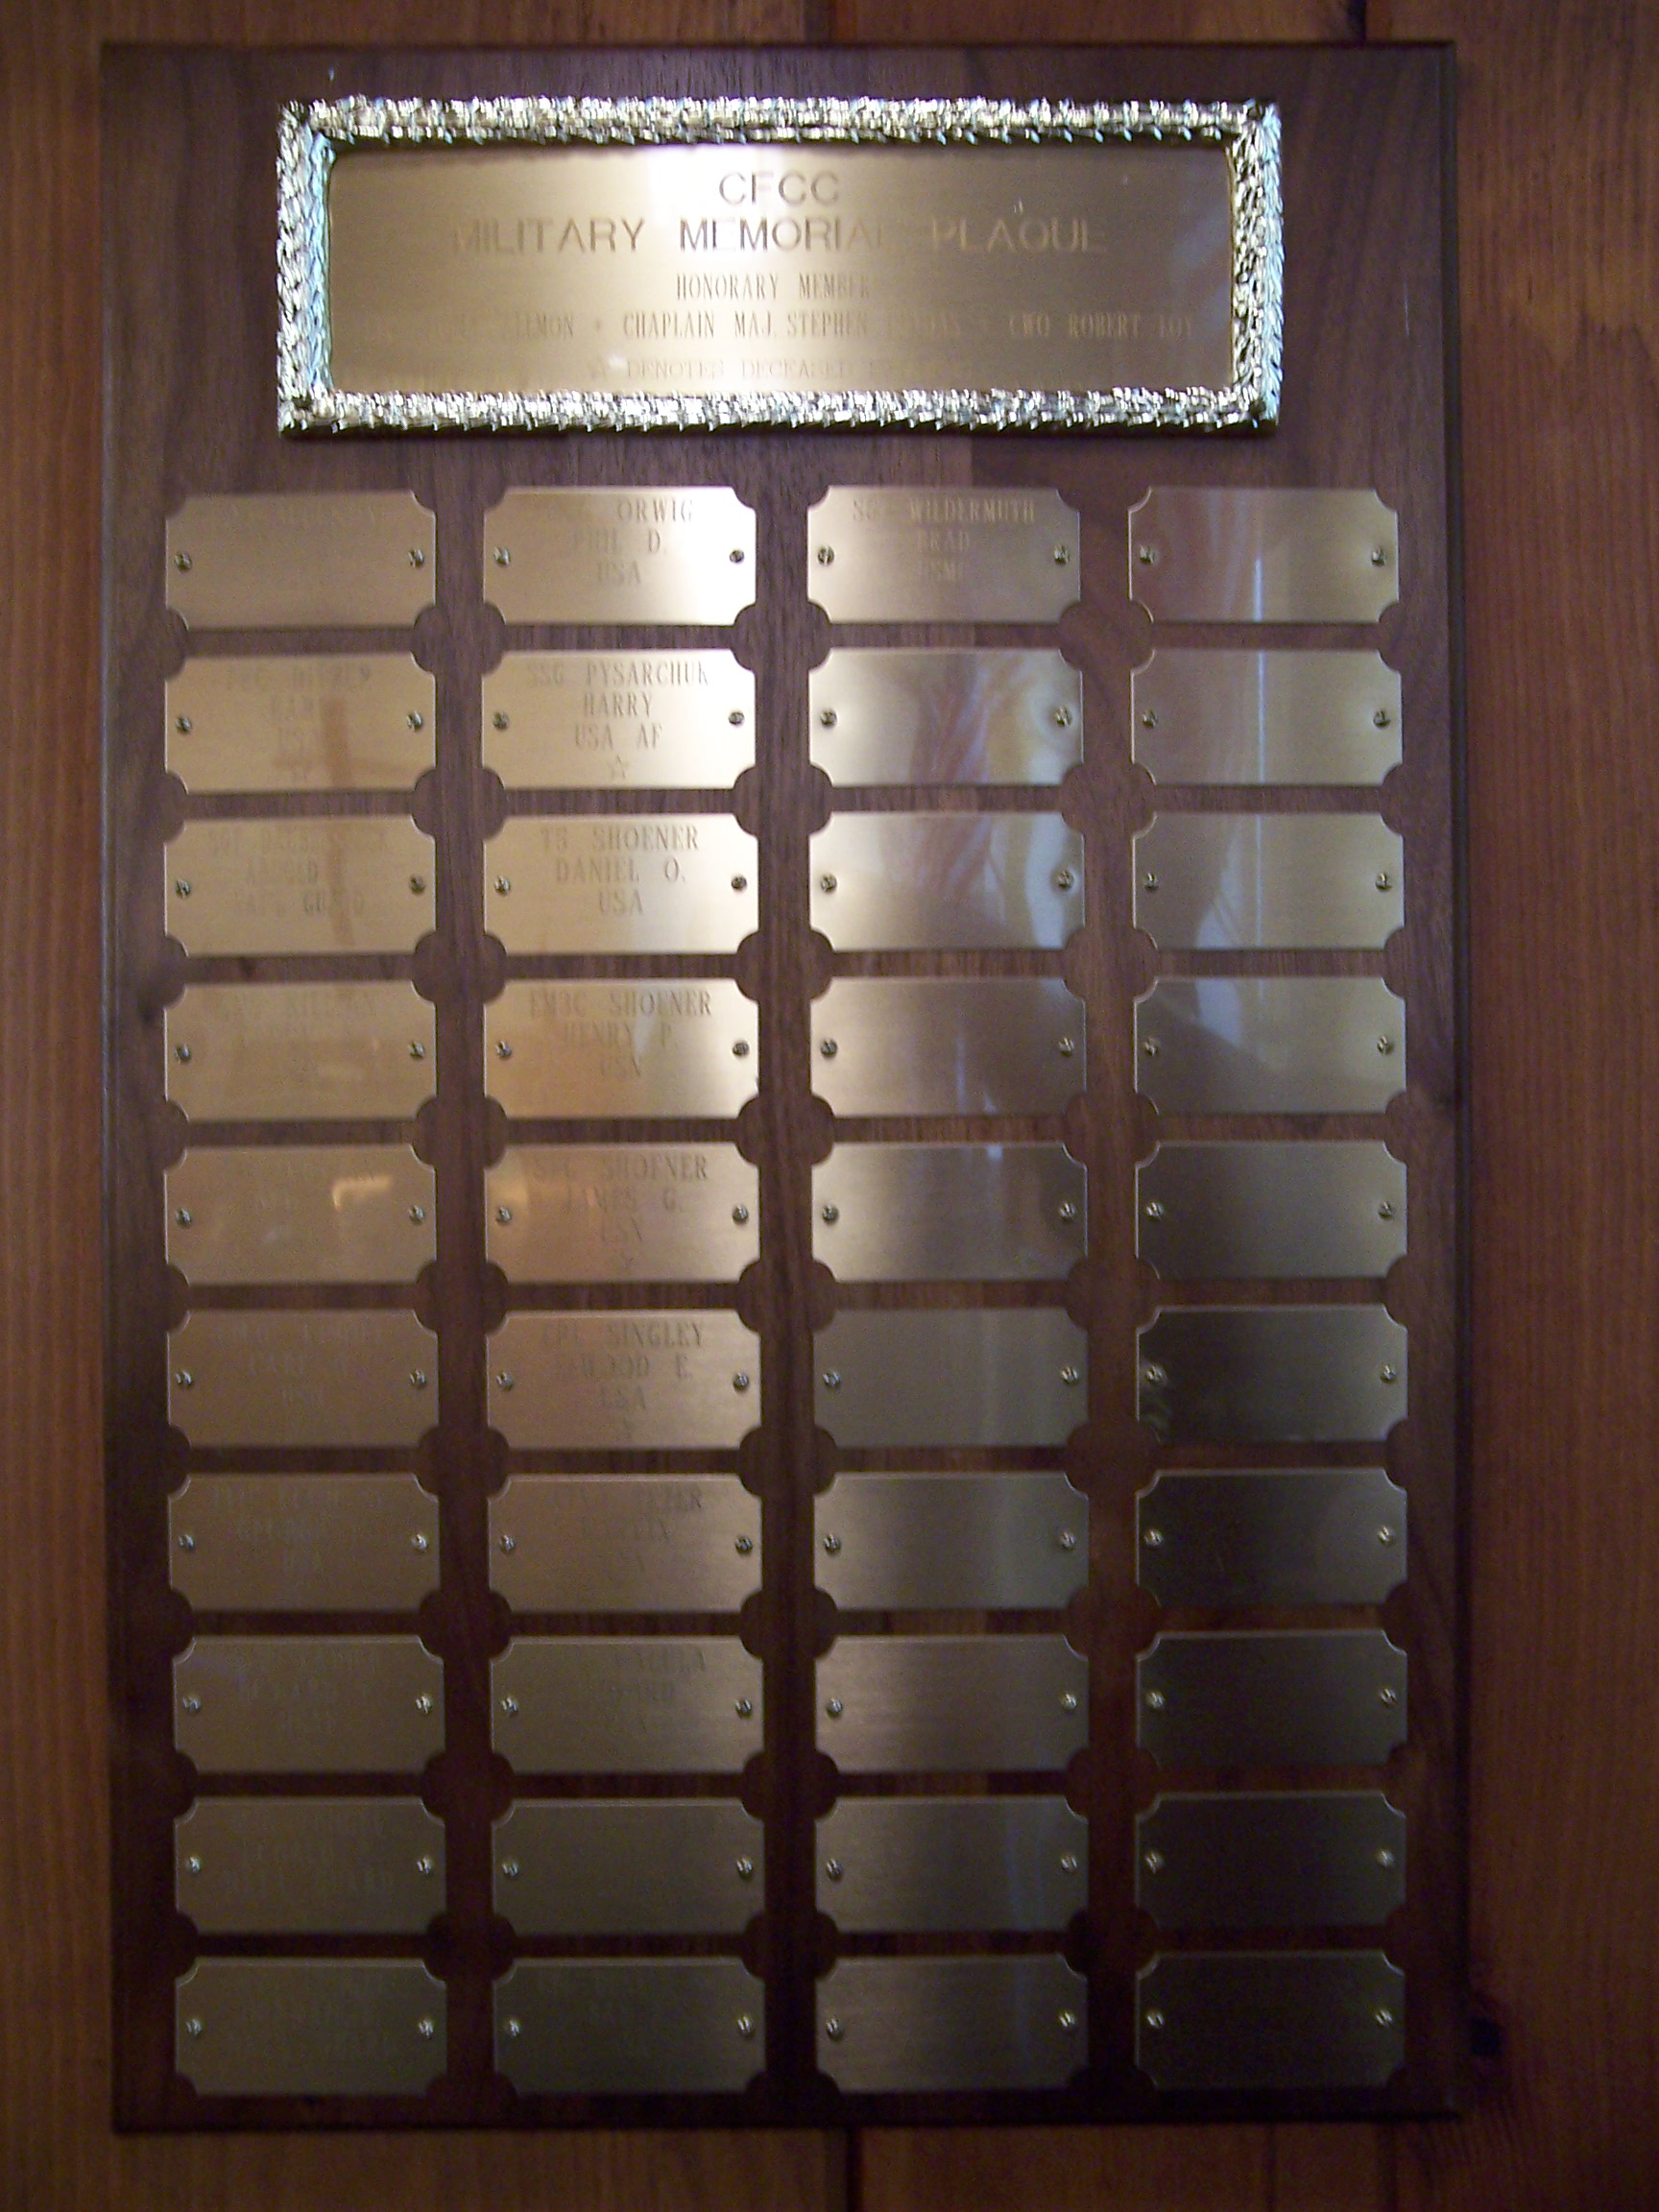 CFCC Veterans Plaque